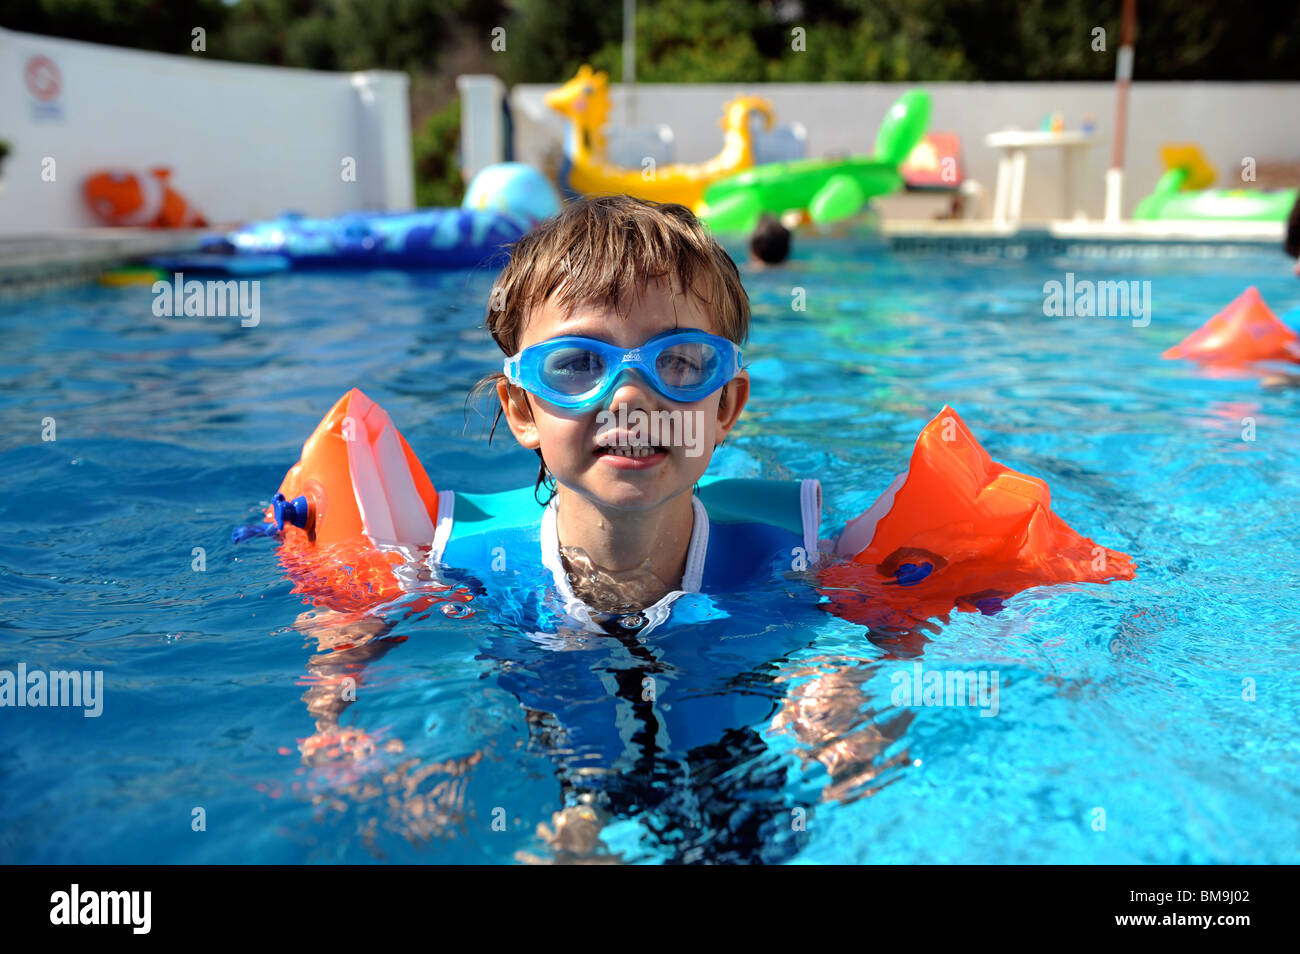 20150505howtopreparemorelmushrooms01g How To Eat Fried Worms Stock Photo  Young Boy Learning How To Swim Wearing Armbands